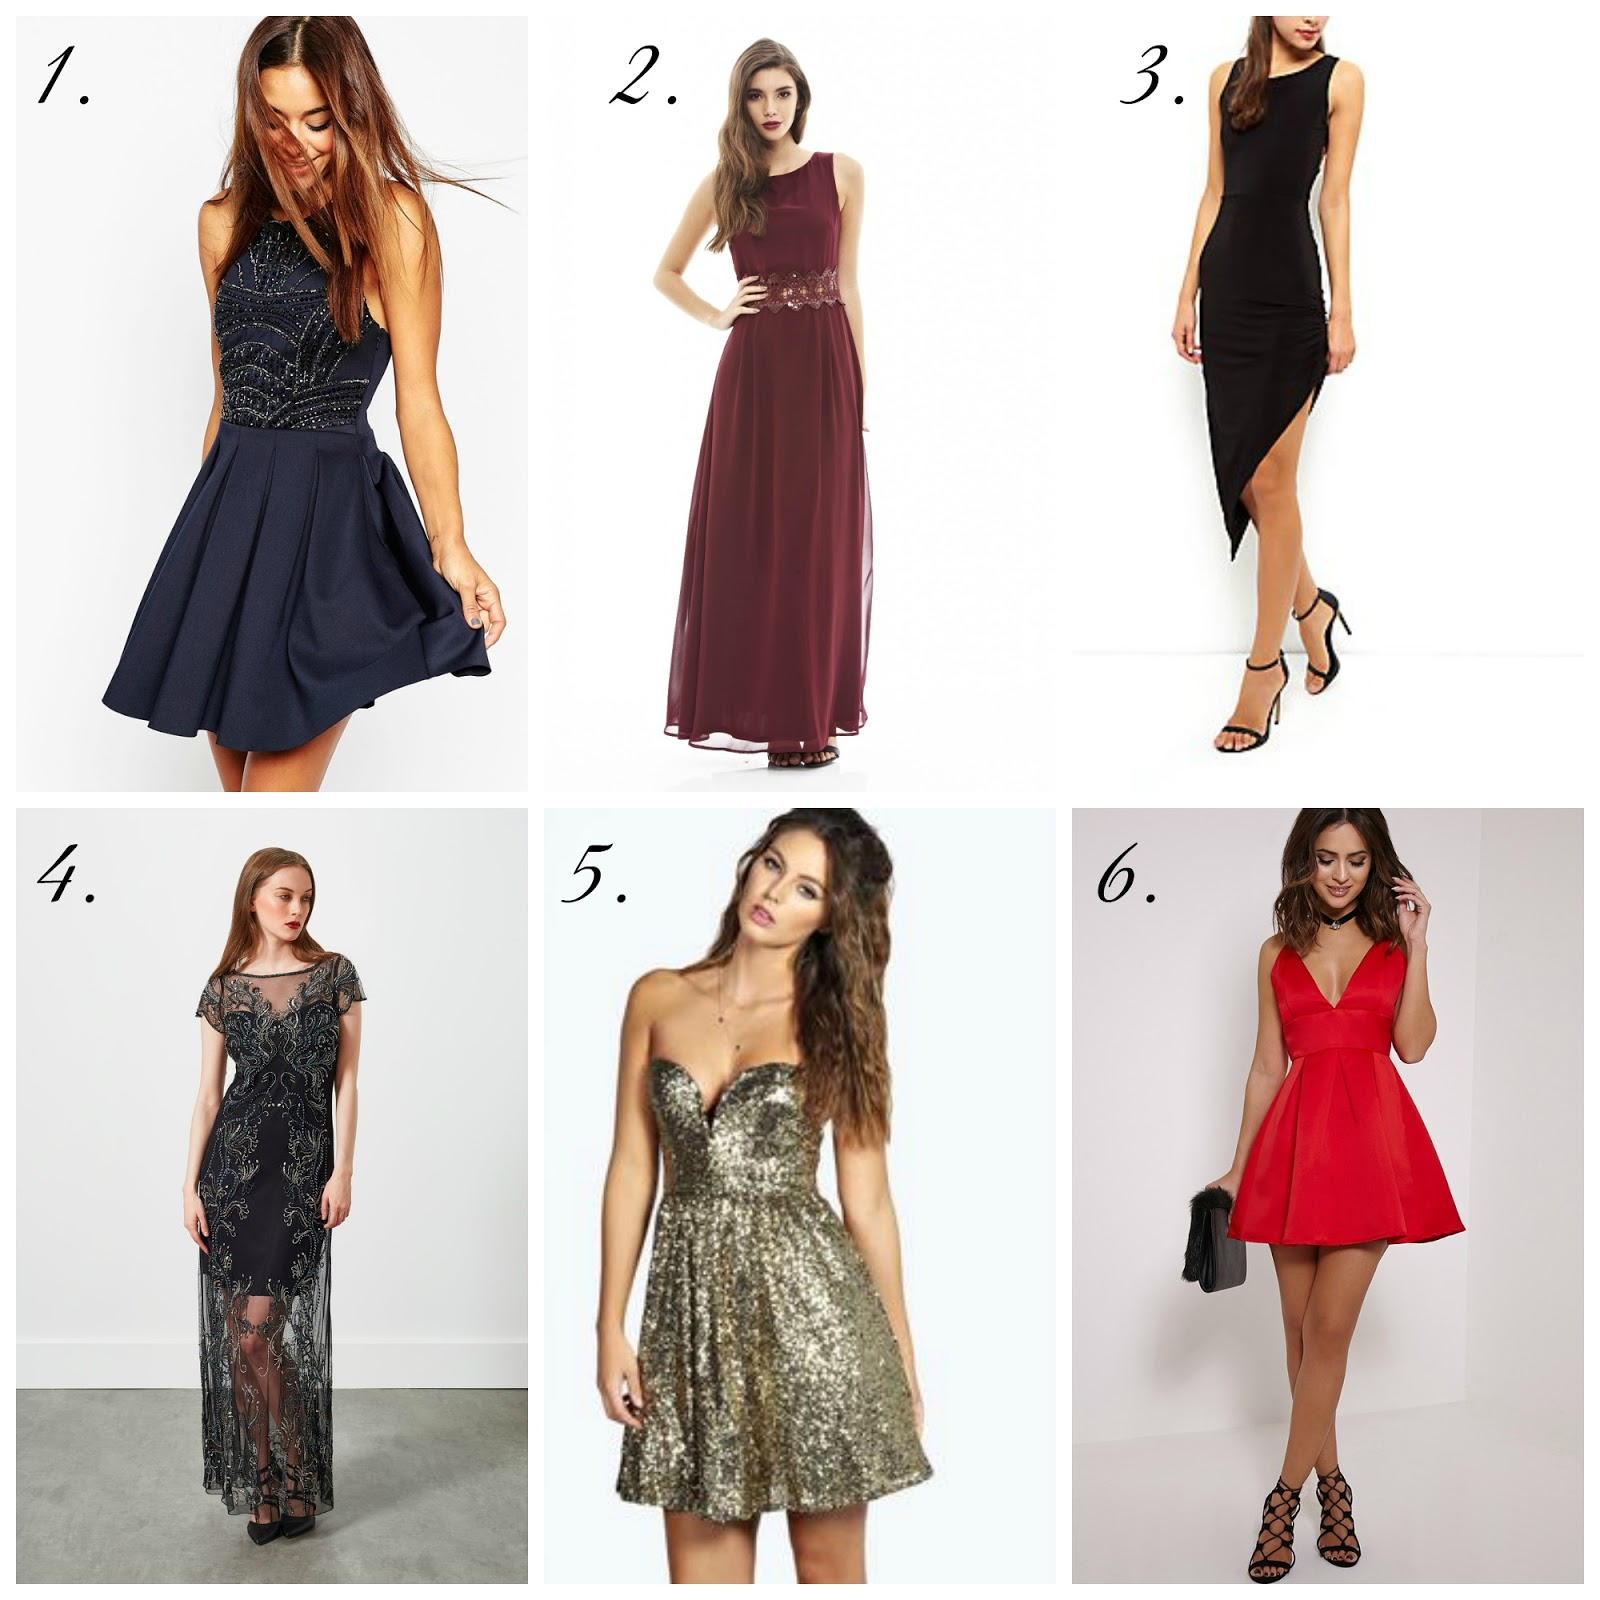 Charming Christmas Party Outfit Ideas Part - 14: Christmas Party Outfit Ideas